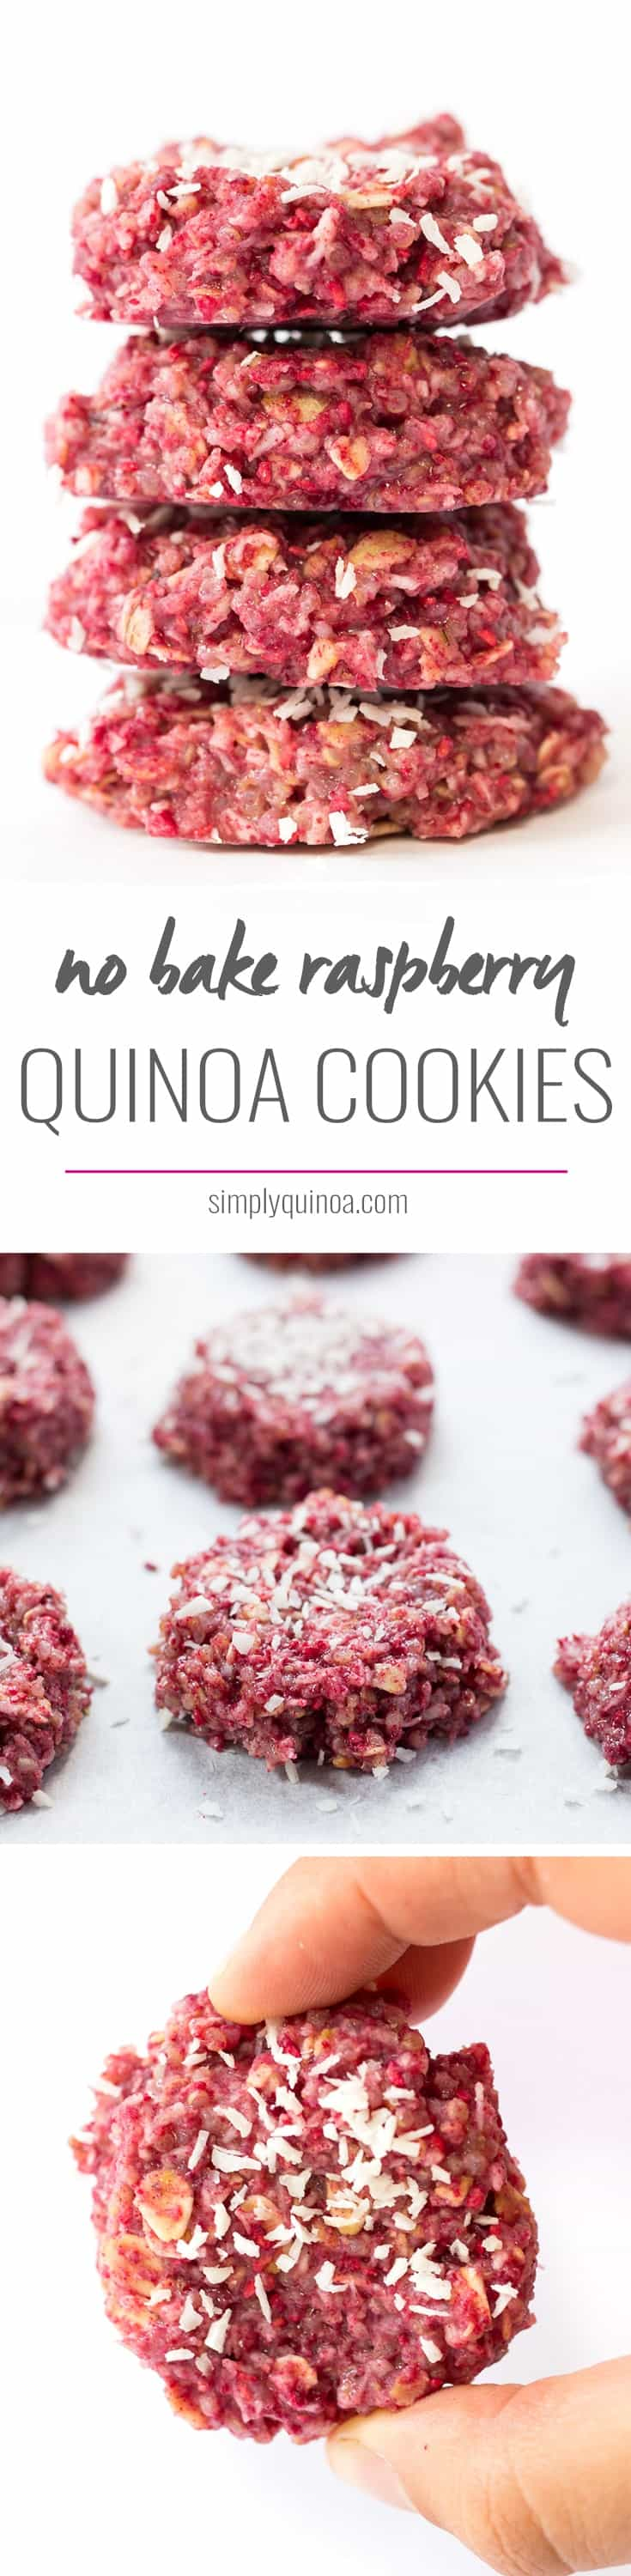 Loving these NO-BAKE raspberry quinoa cookies - they're healthy and delicious | recipe on simplyquinoa.com | vegan + gluten-free